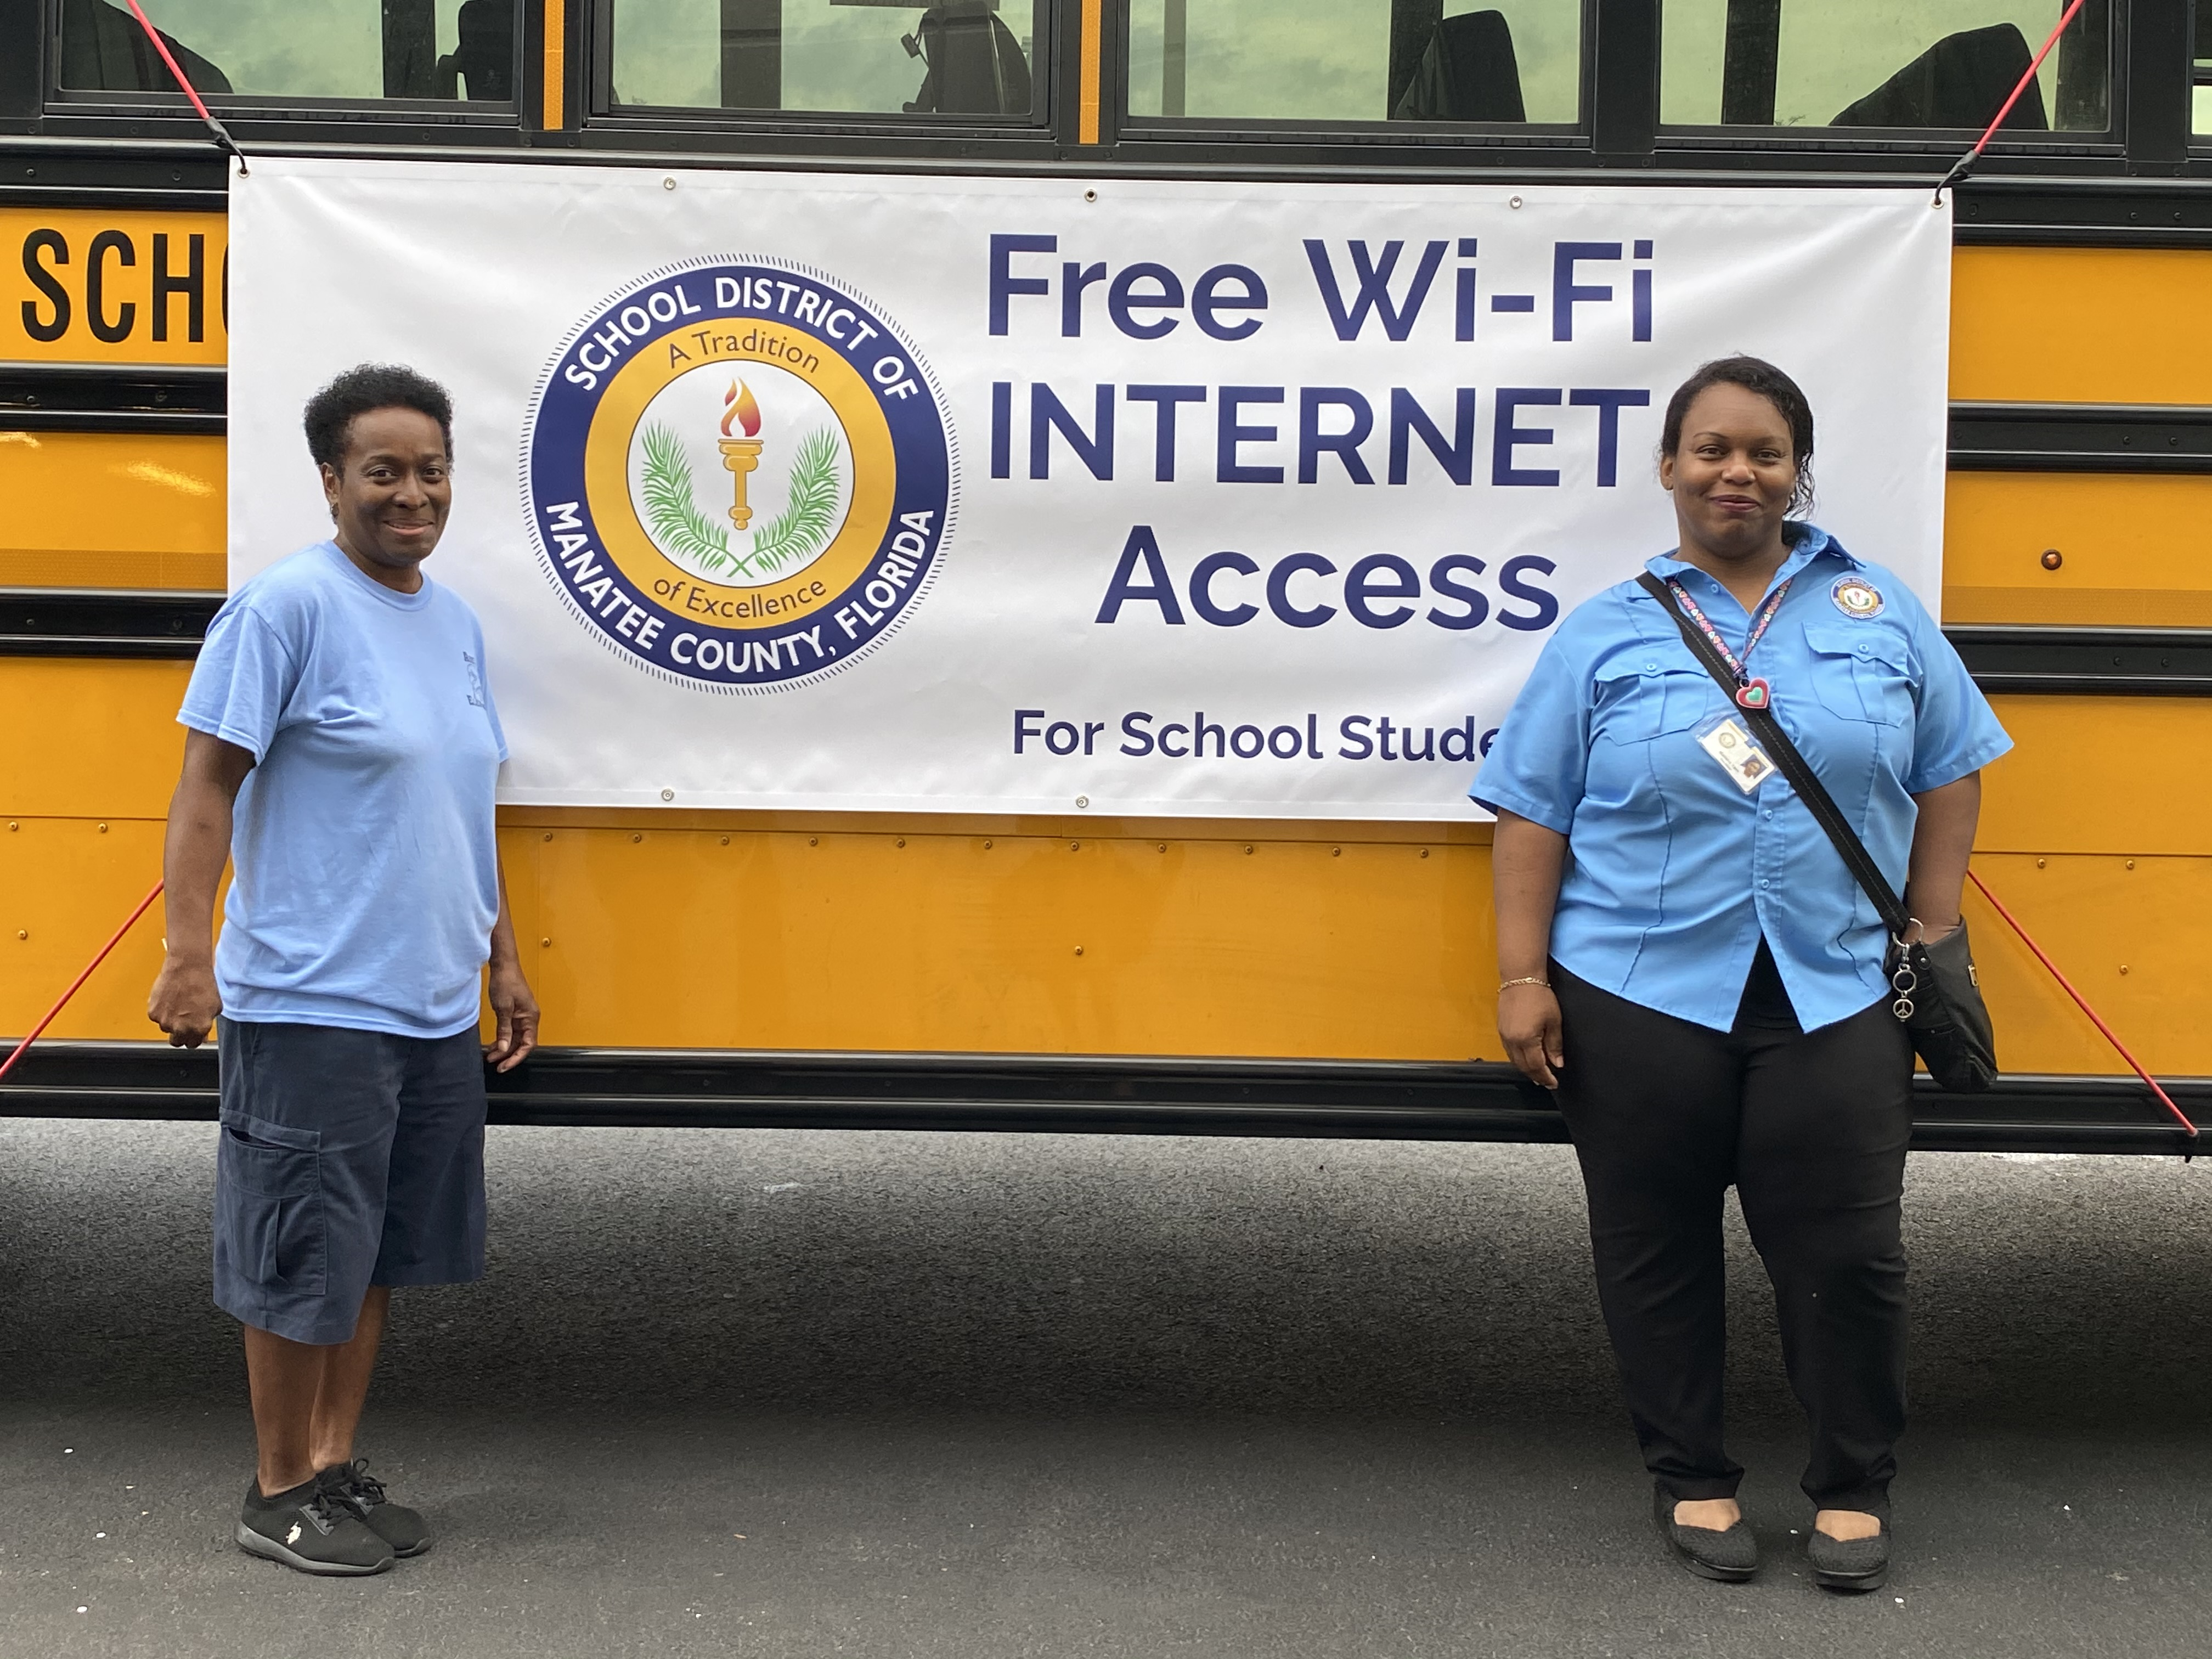 The School District of Manatee County in Flordia plans to use it WiFi hotspot buses tp provide broadband internet access even after schools reopen.